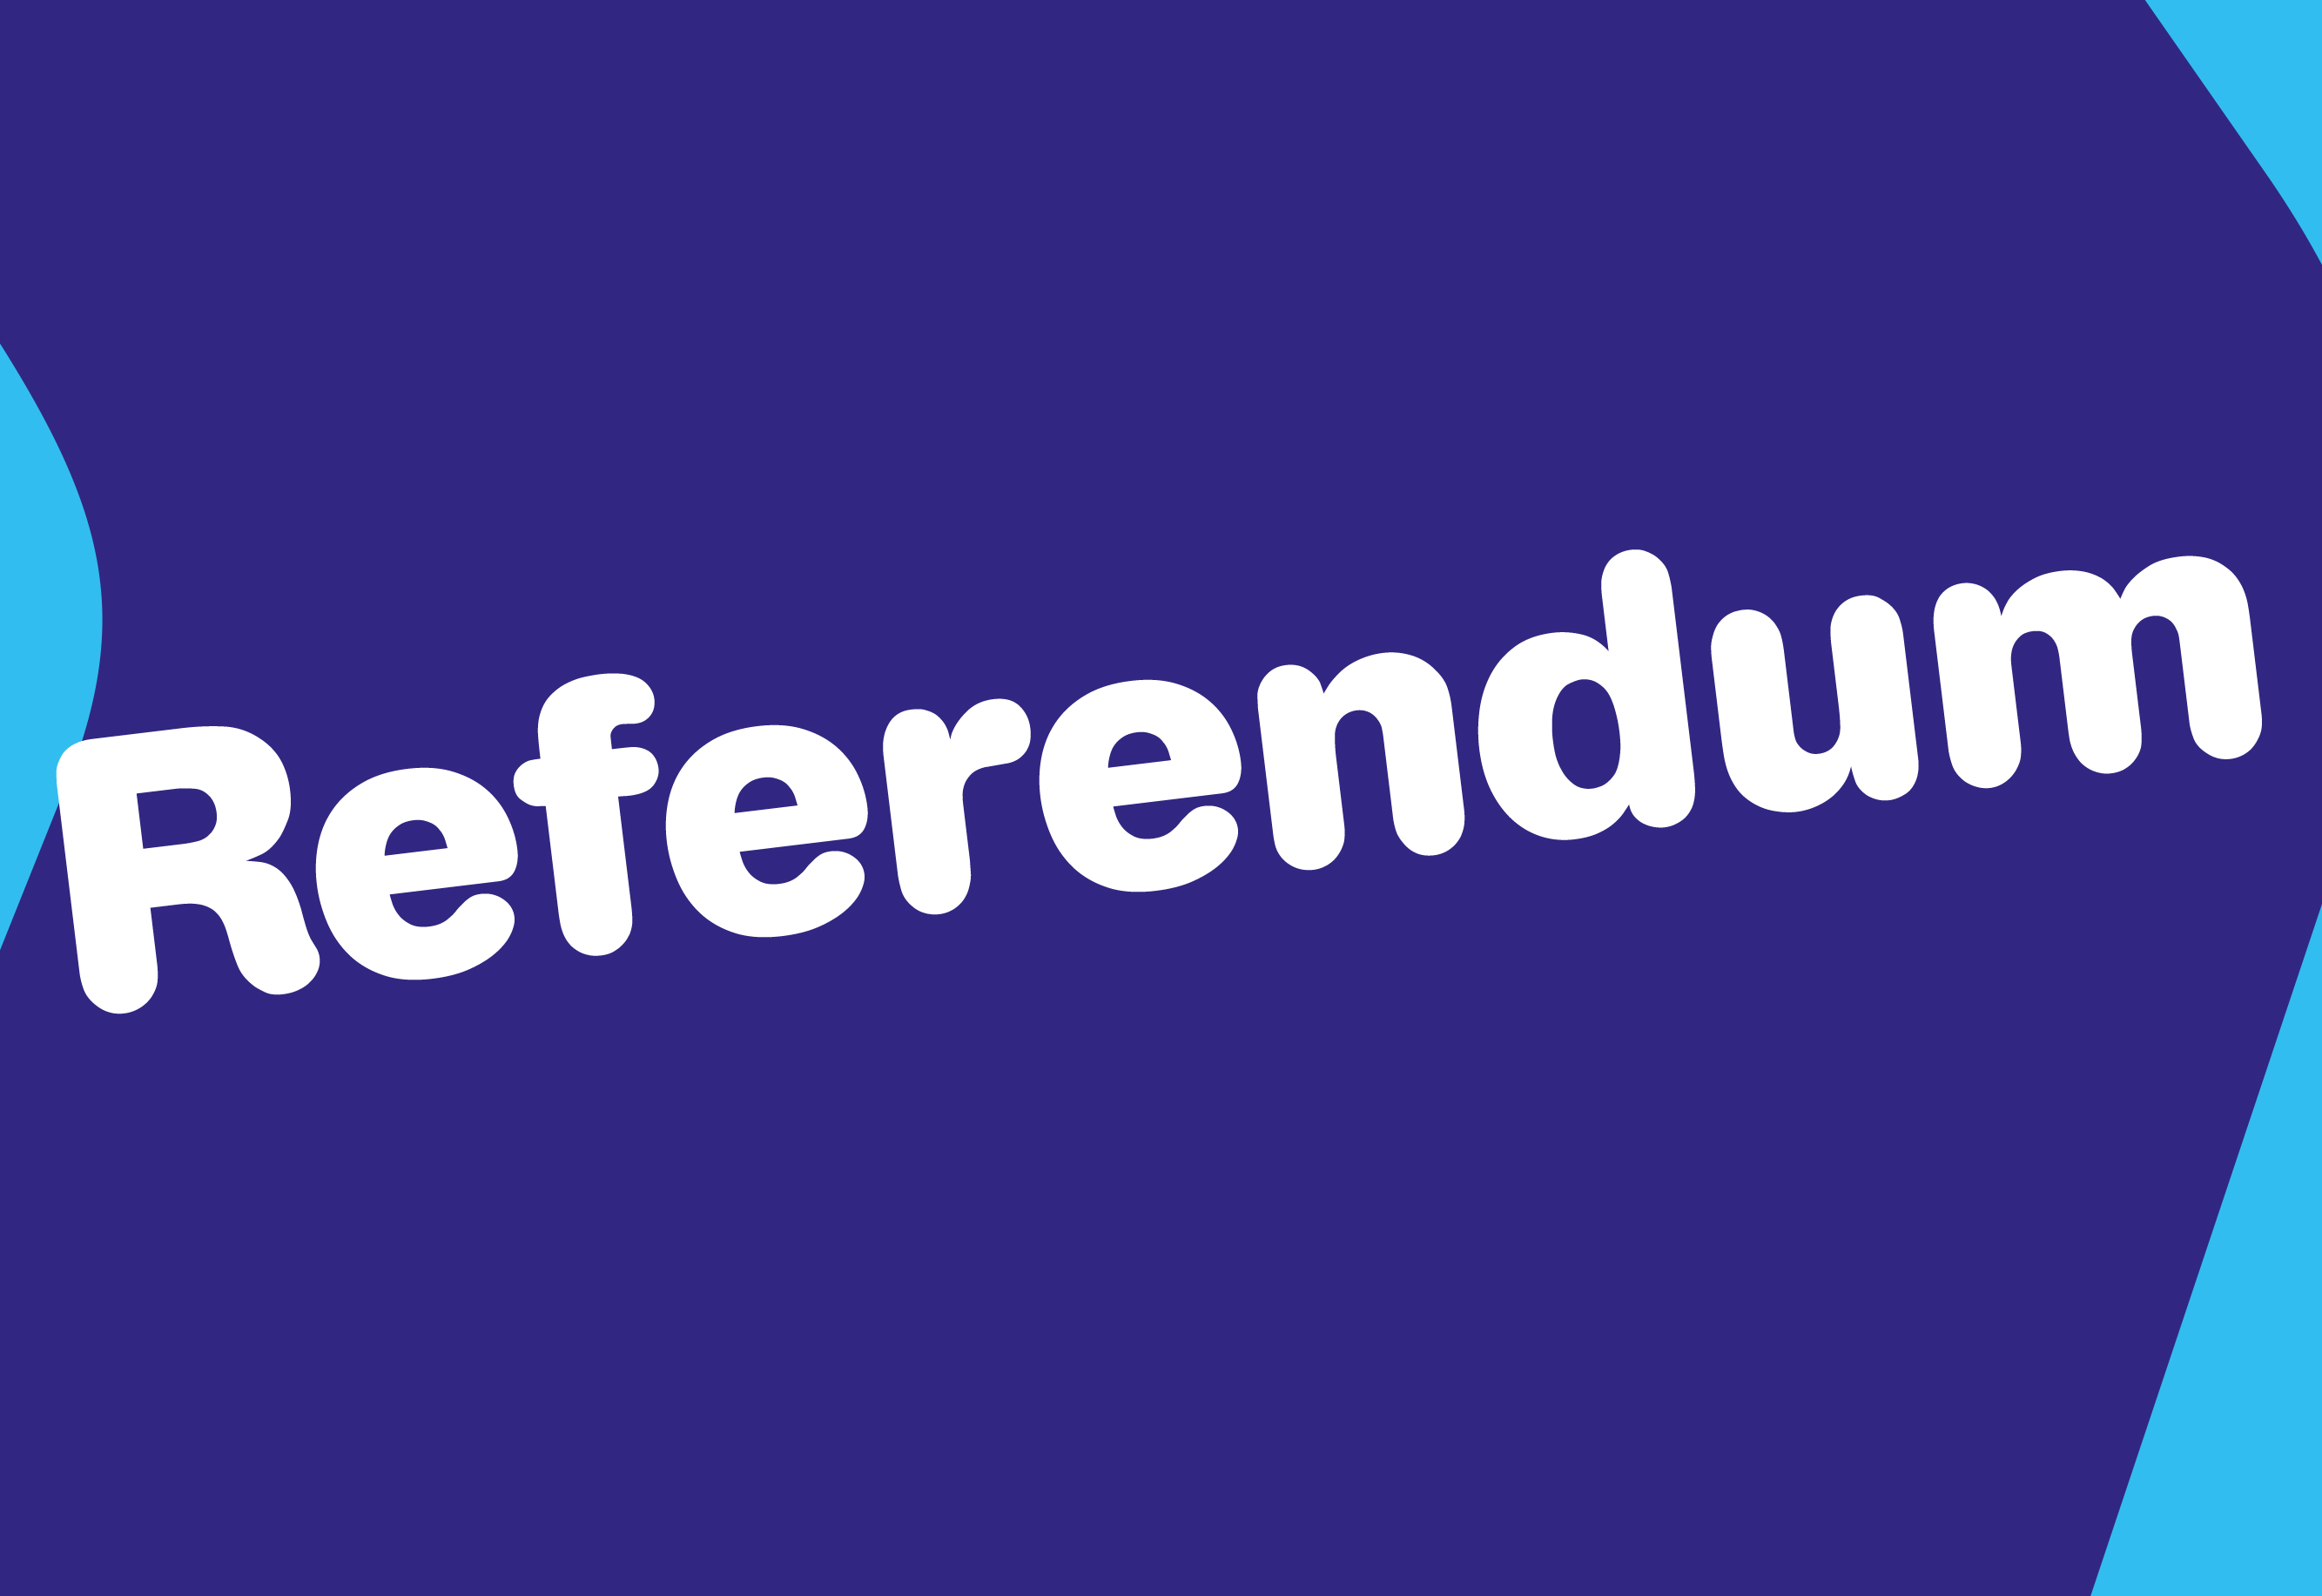 Ssu officers referendum newsstory 01